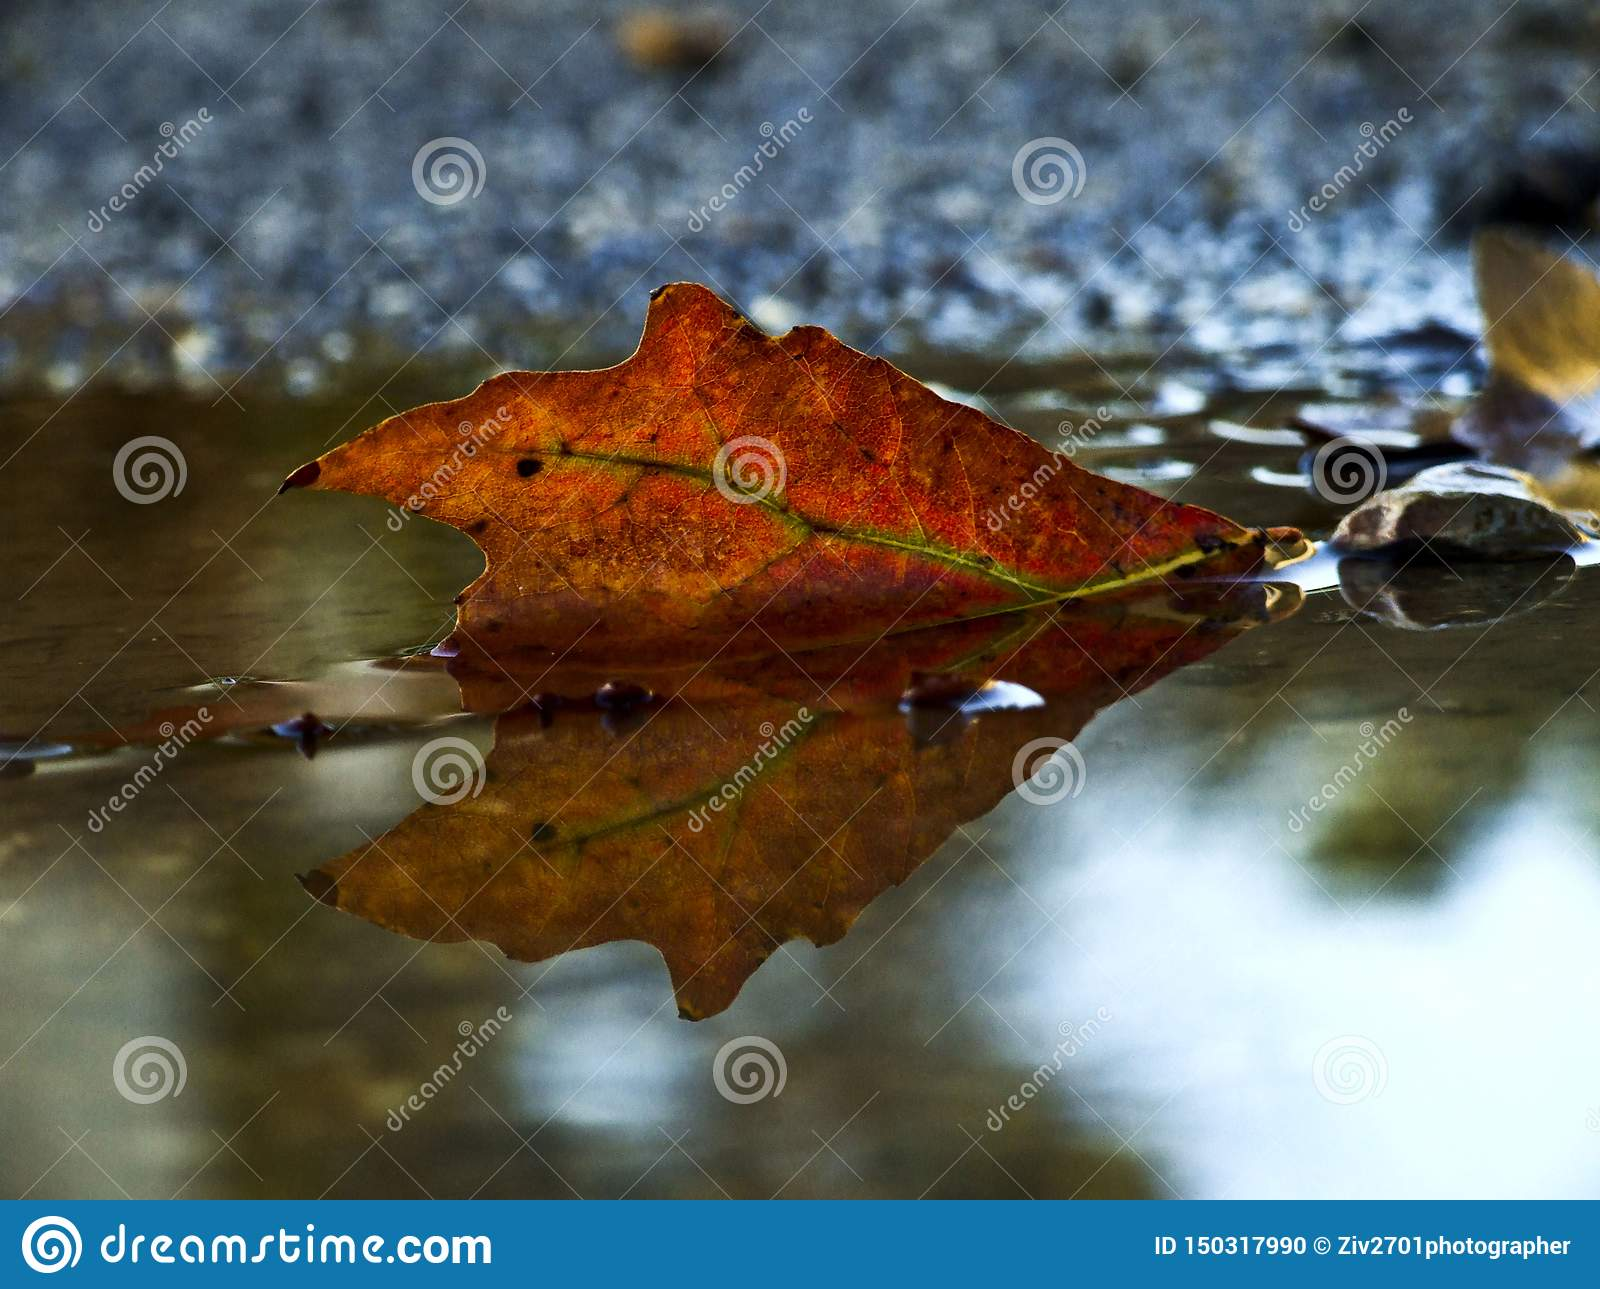 Autumn leaf reflected in a puddle of water